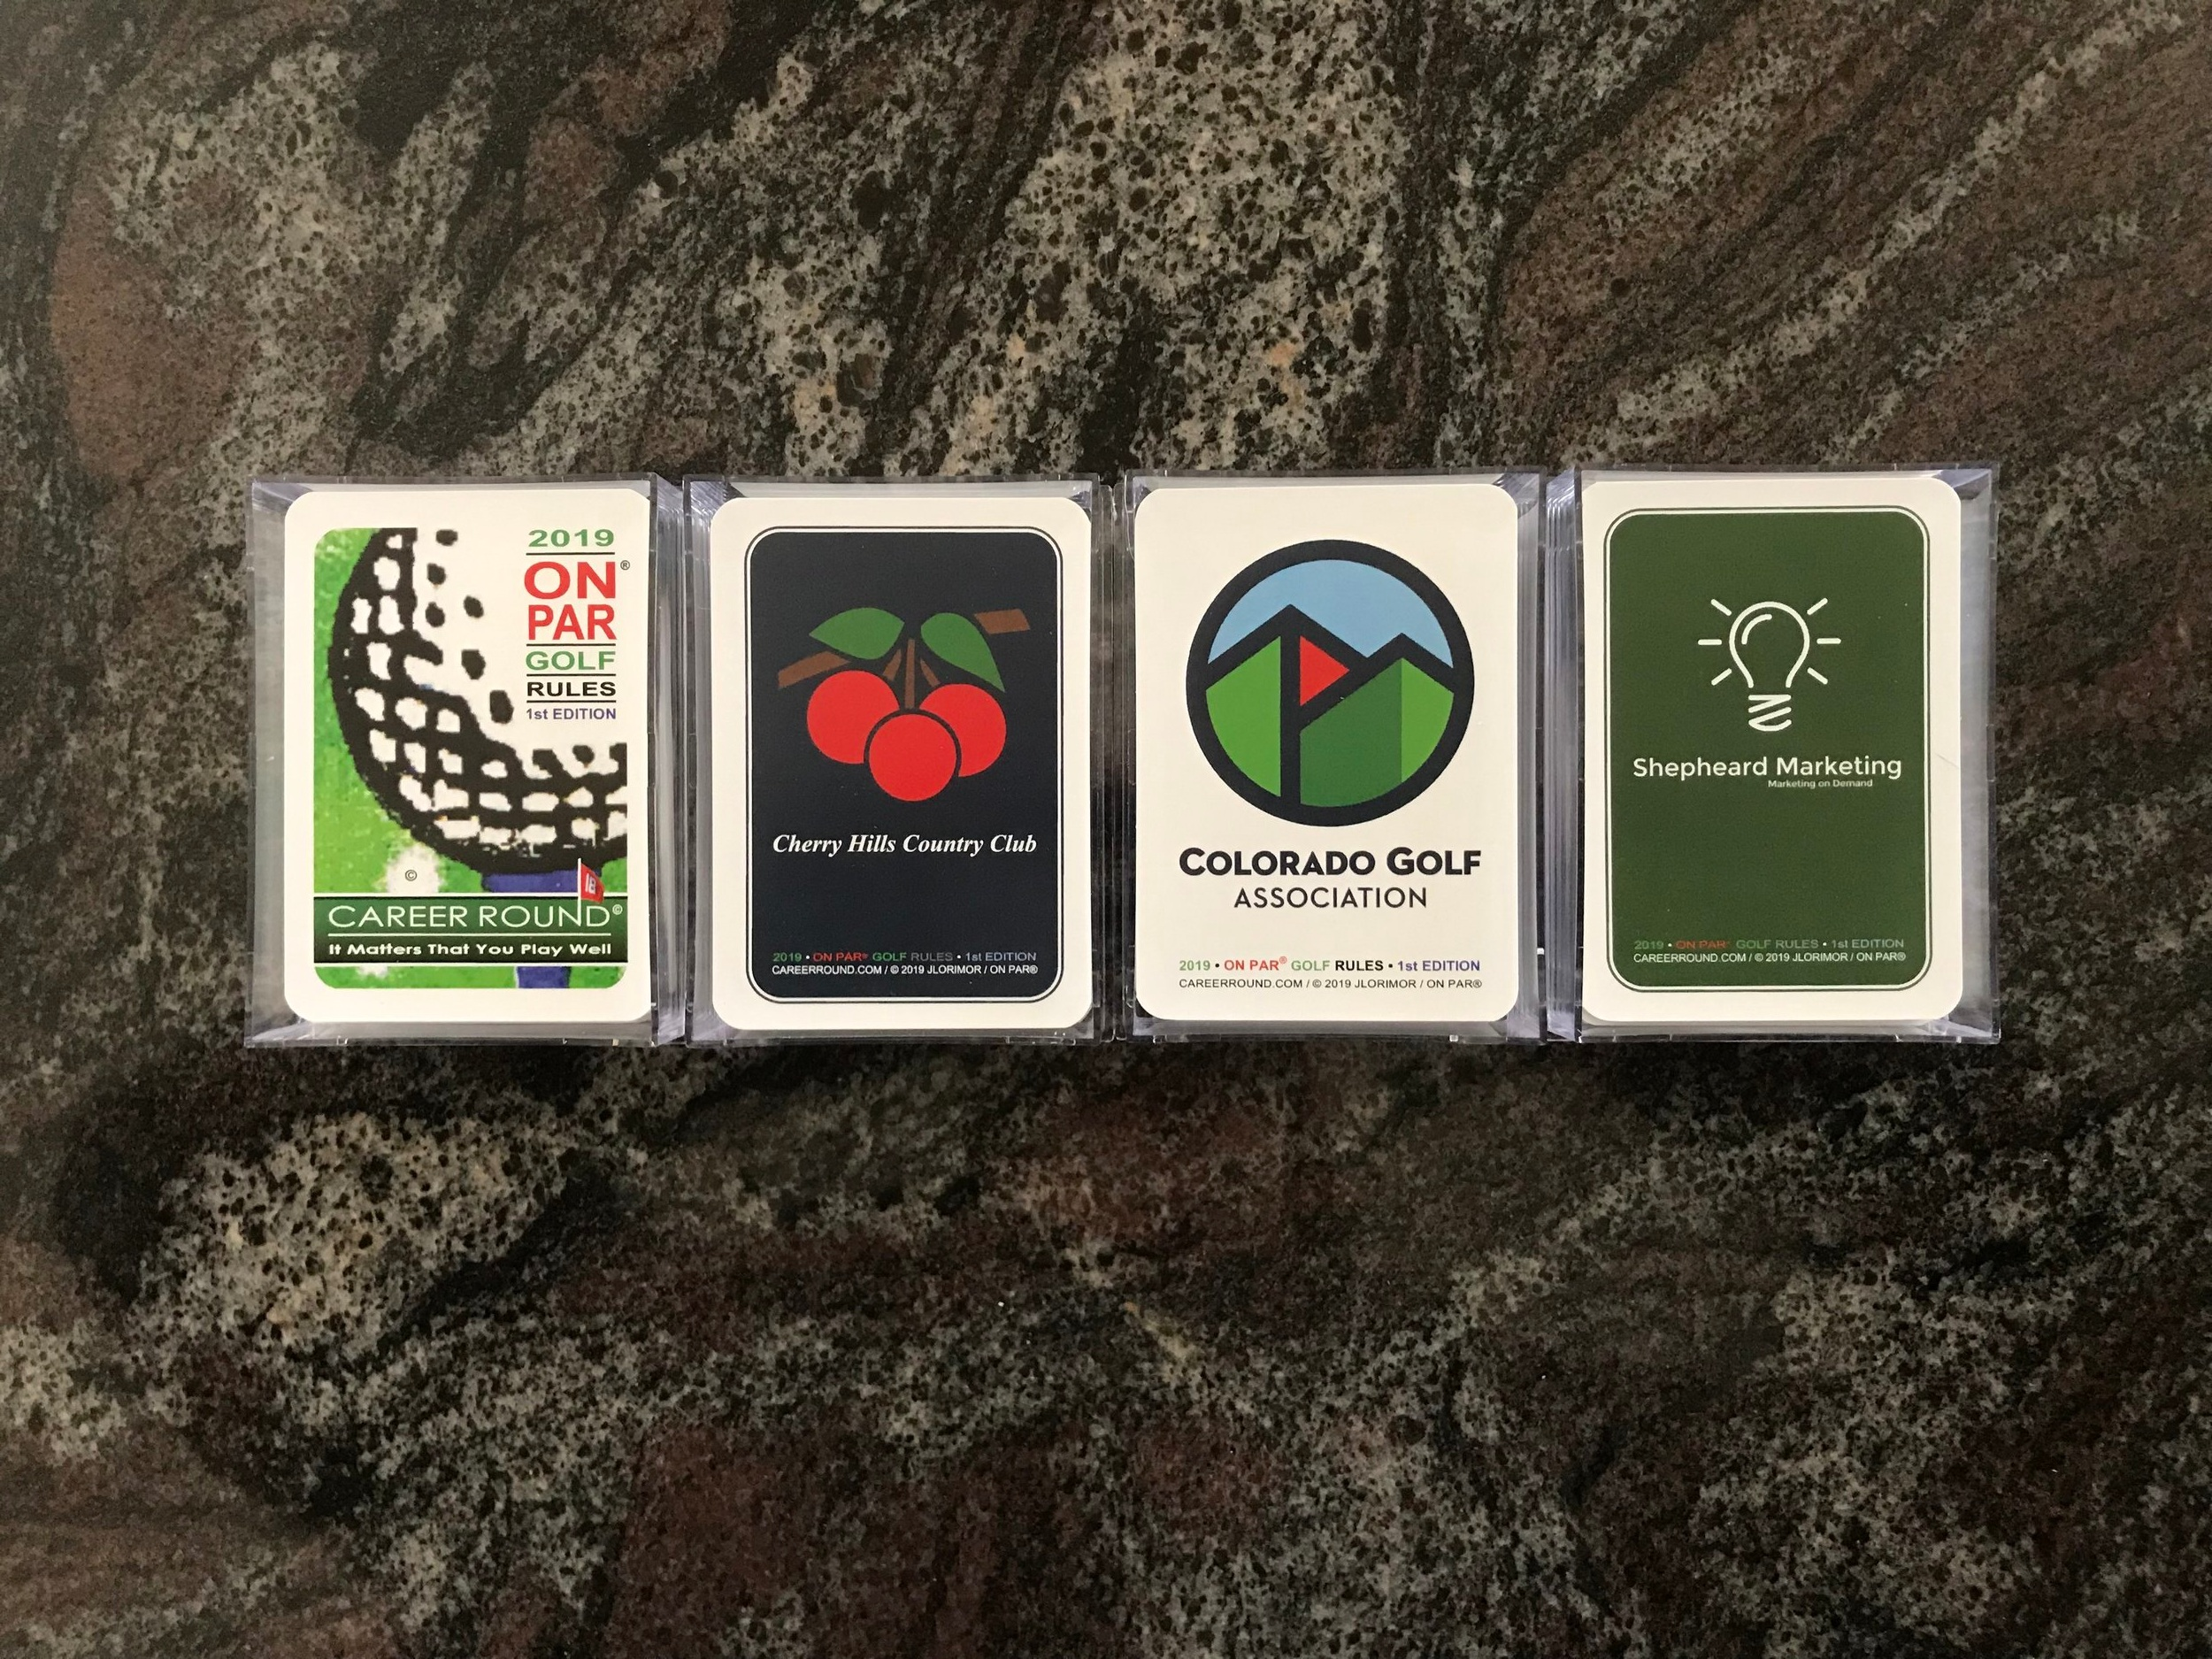 Customize our cards for your club, business, family reunion, tournament or event with your own image or logo. Decks are securely packaged in sturdy transparent plastic box for visibility and easy distribution.